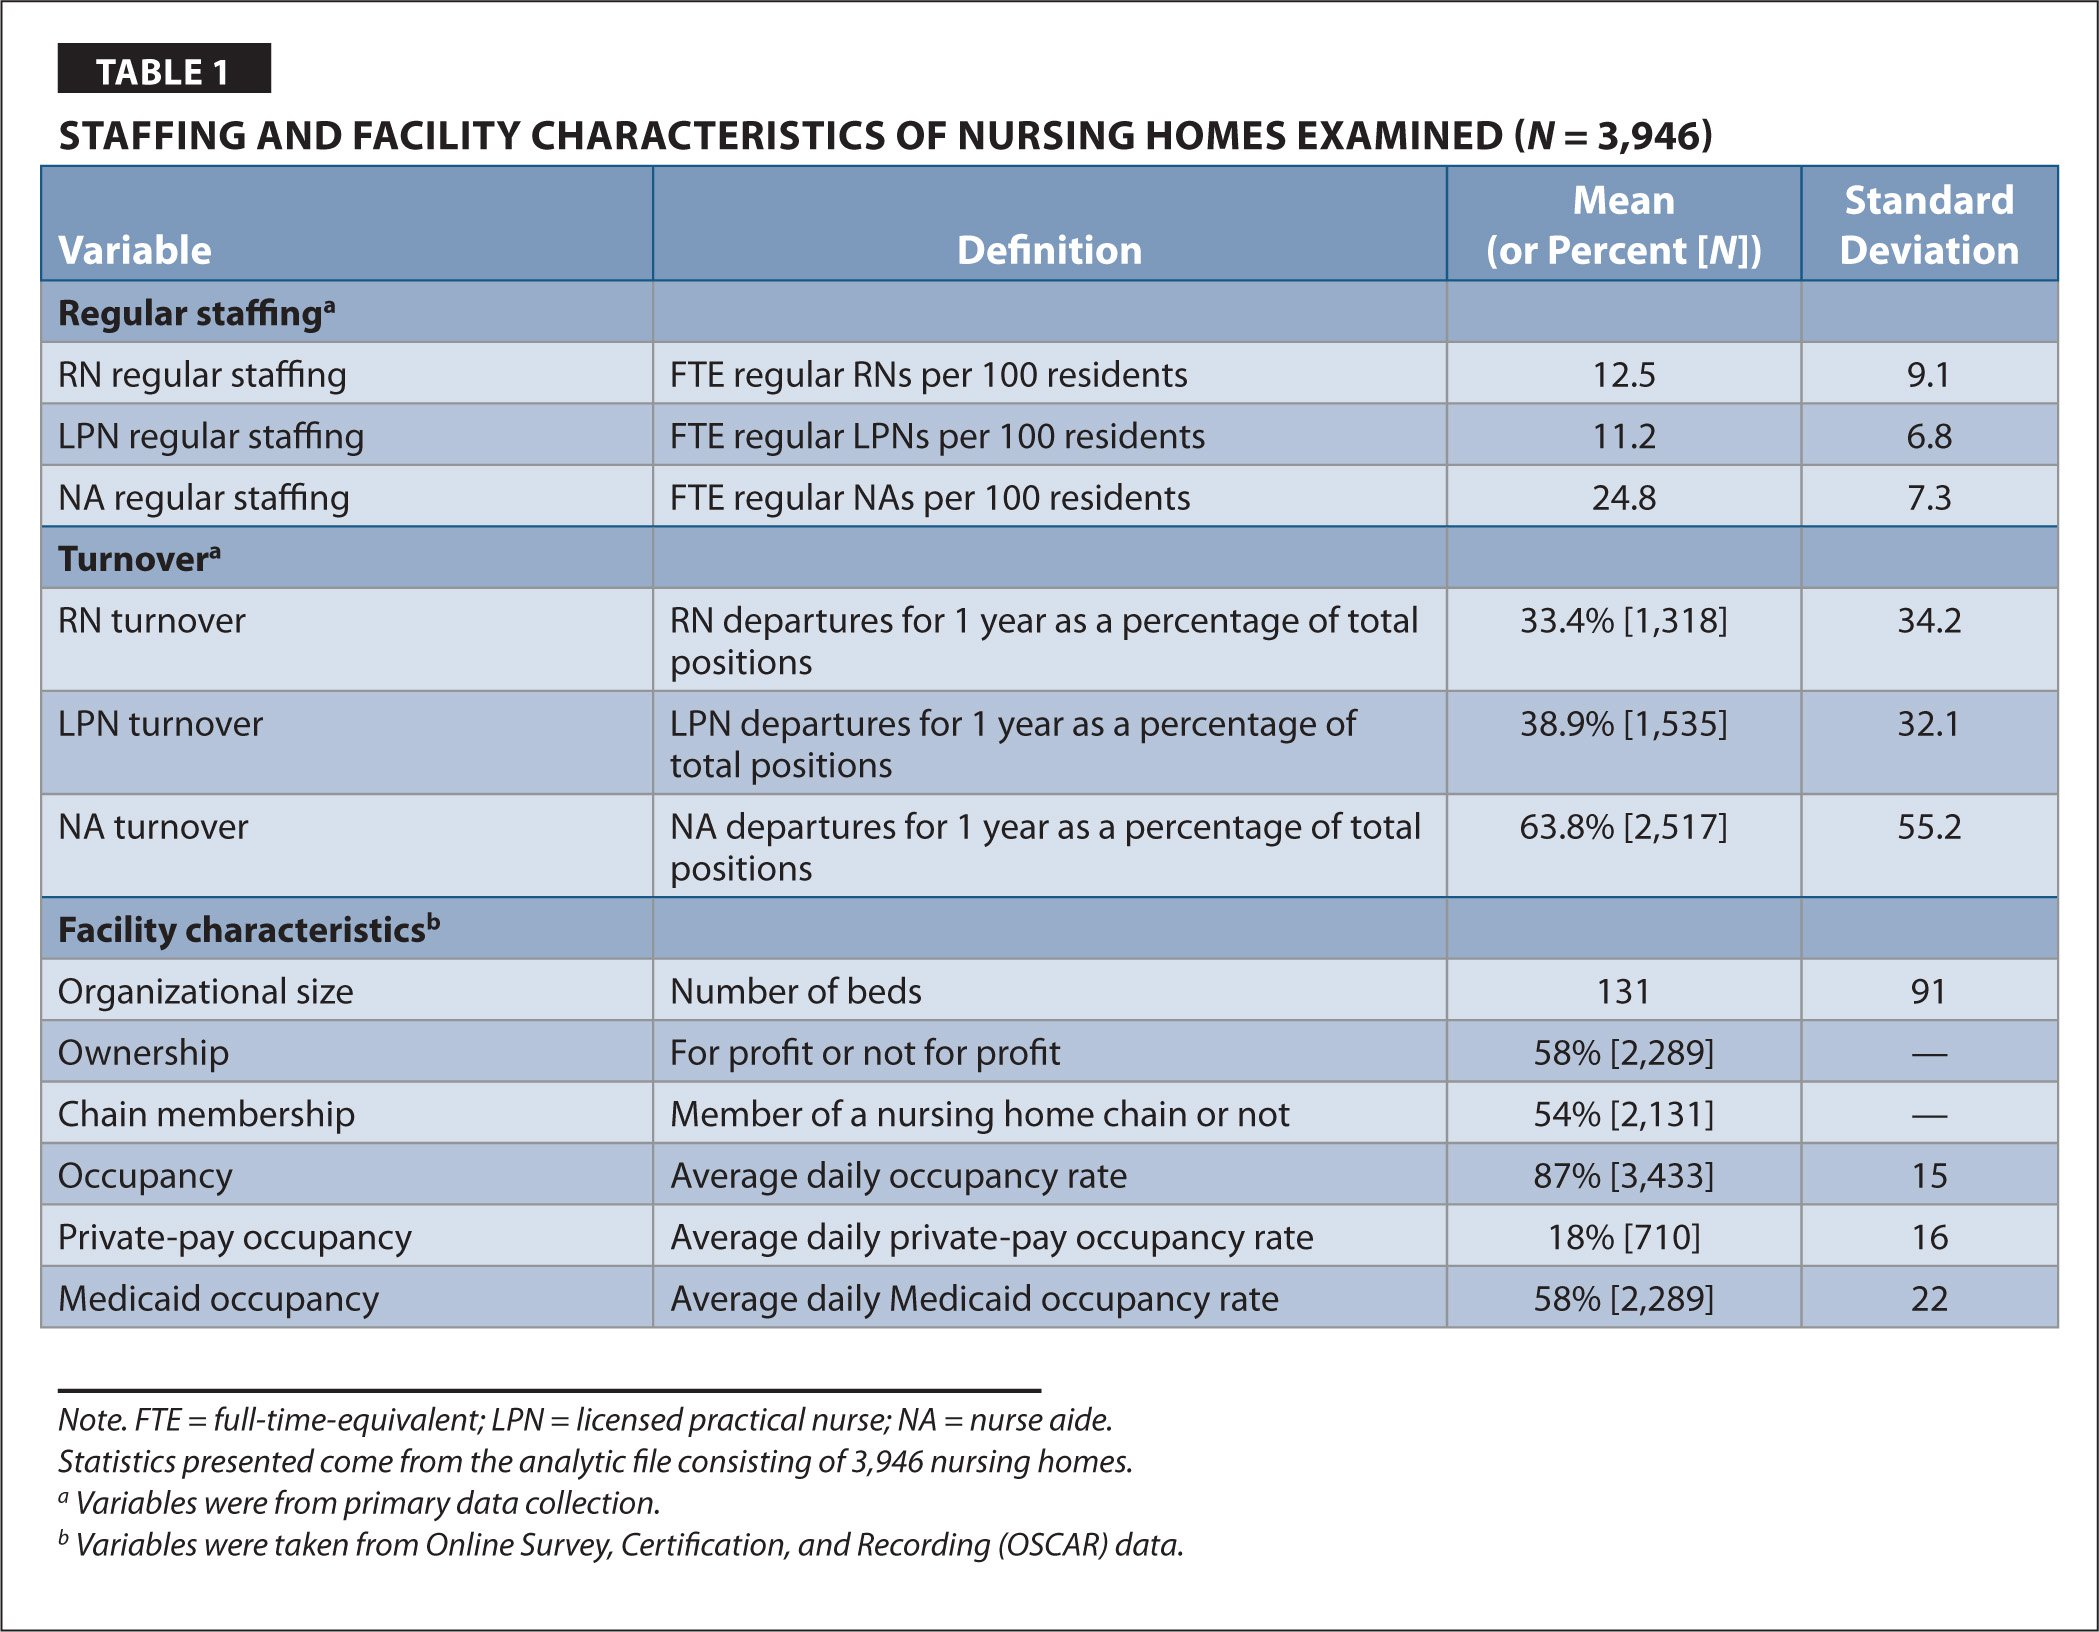 Staffing and Facility Characteristics of Nursing Homes Examined (N = 3,946)